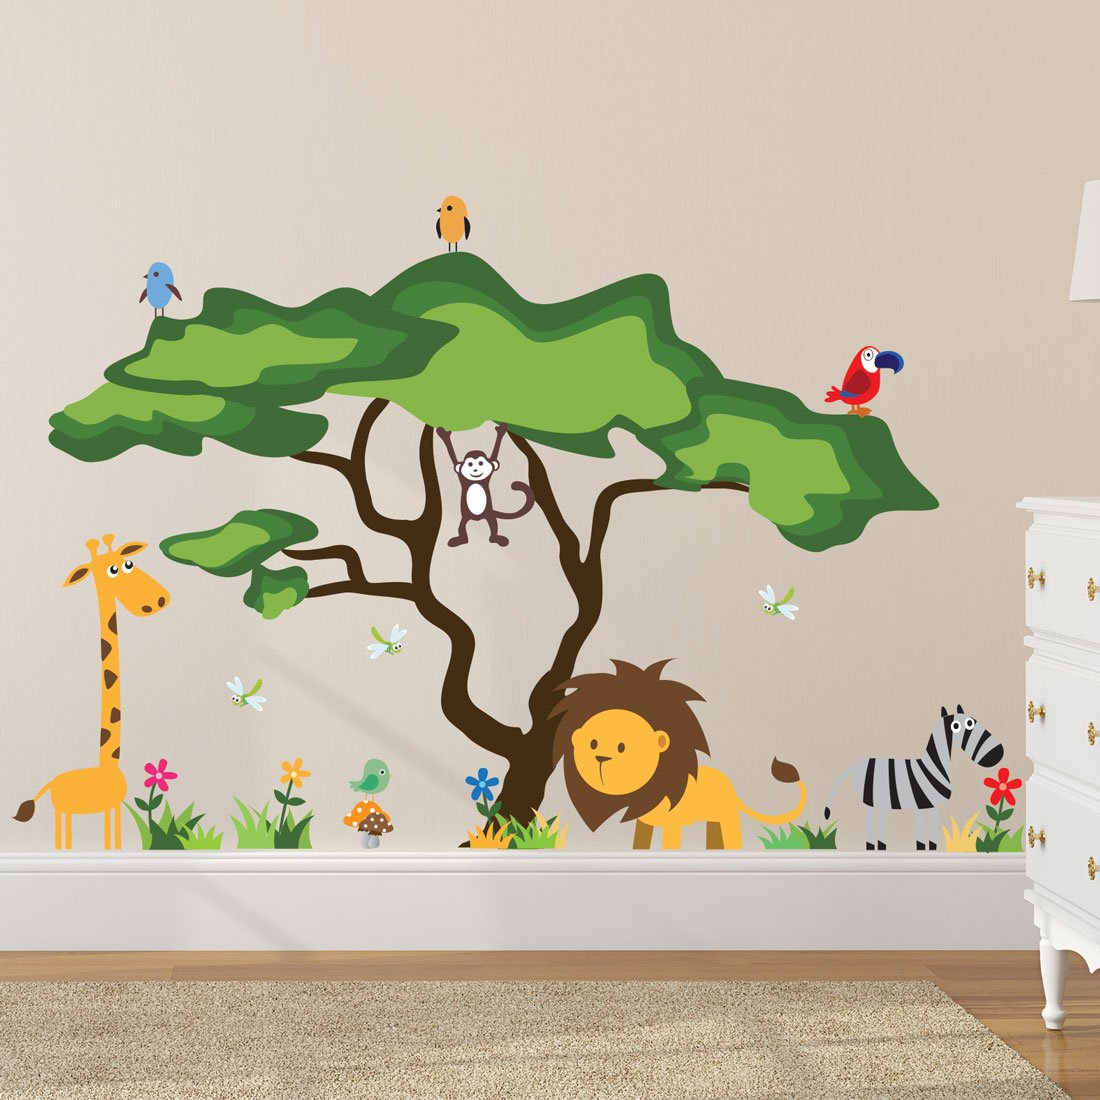 Amazoncom Timber Artbox Cute Animals In The Jungle Wall Decals - How do you put a wall sticker on